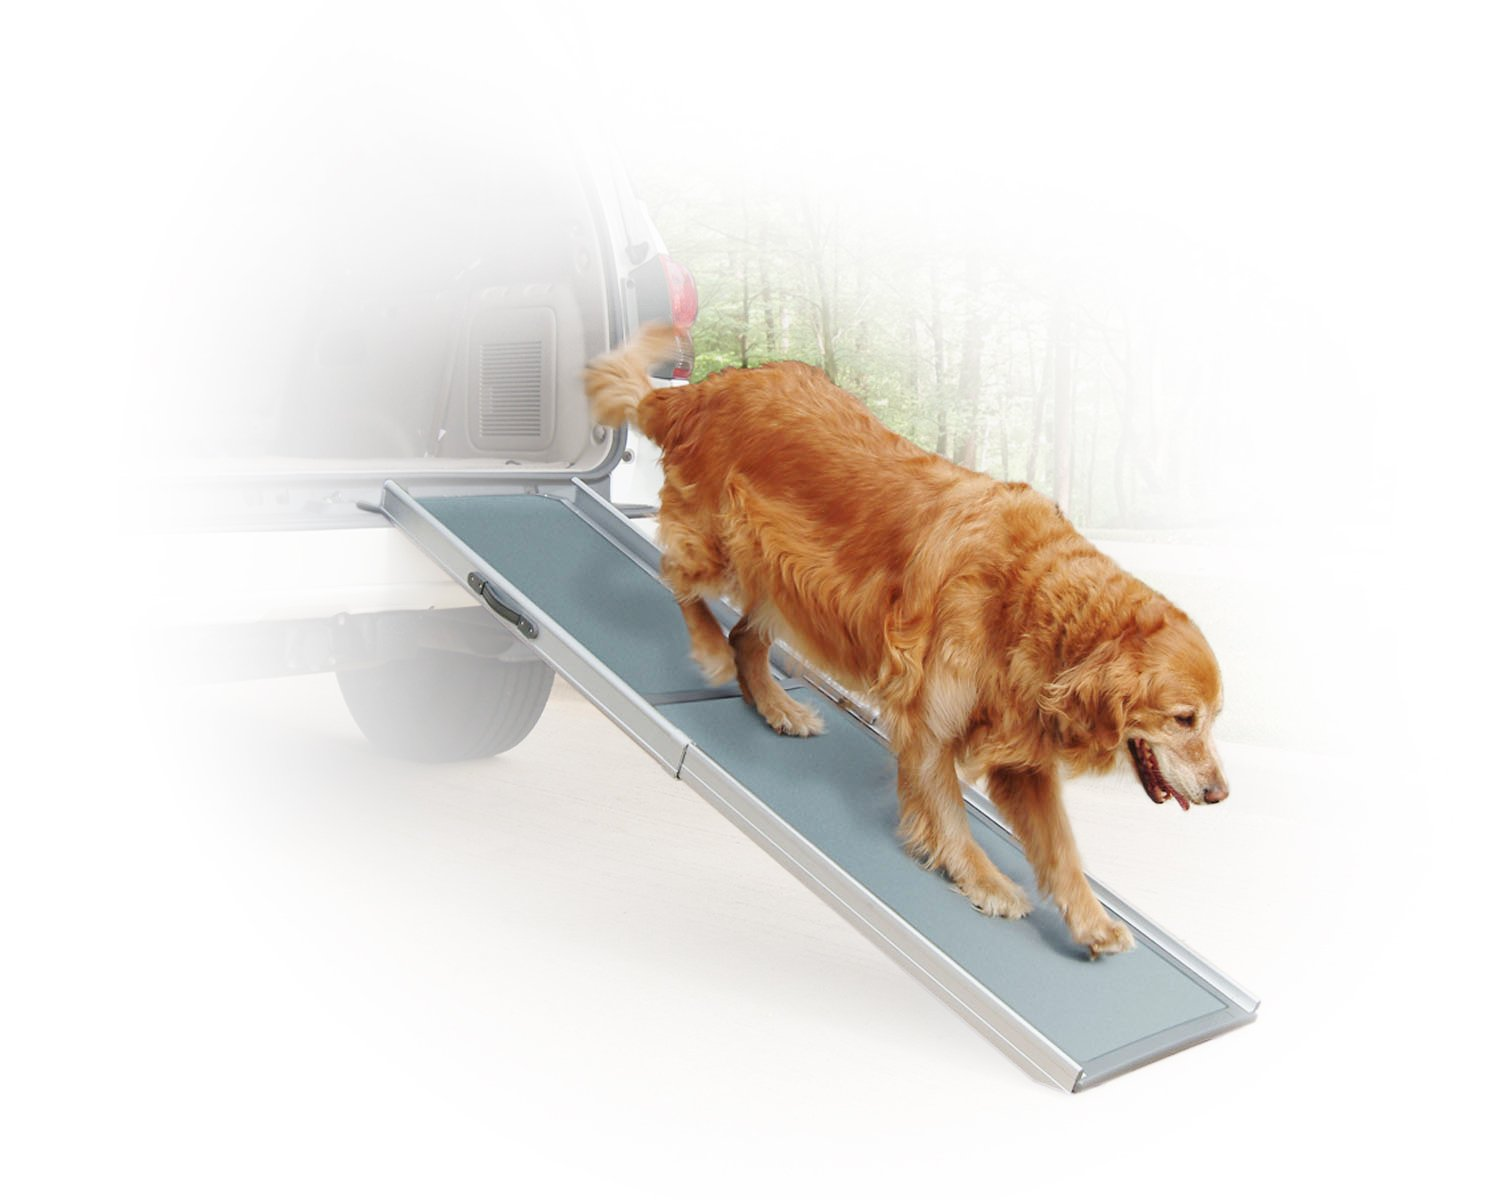 Solvit PetSafe Deluxe Telescoping Pet Ramp, Standard, 39 in. - 72 in, Portable Lightweight Aluminum Dog